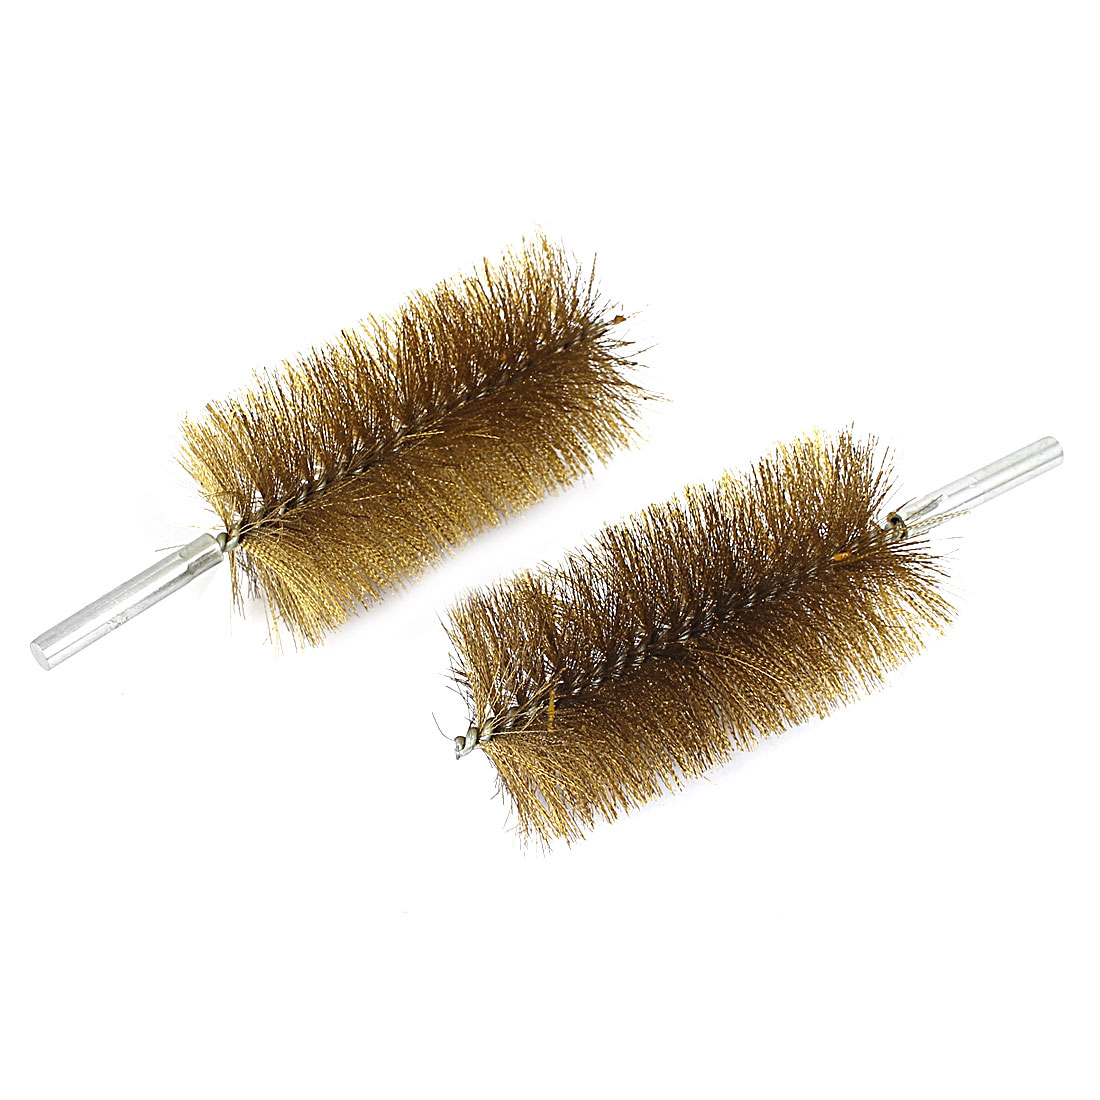 60mm Brush Dia Copper Wire Tube Brushes Cleaning Tool 2pcs